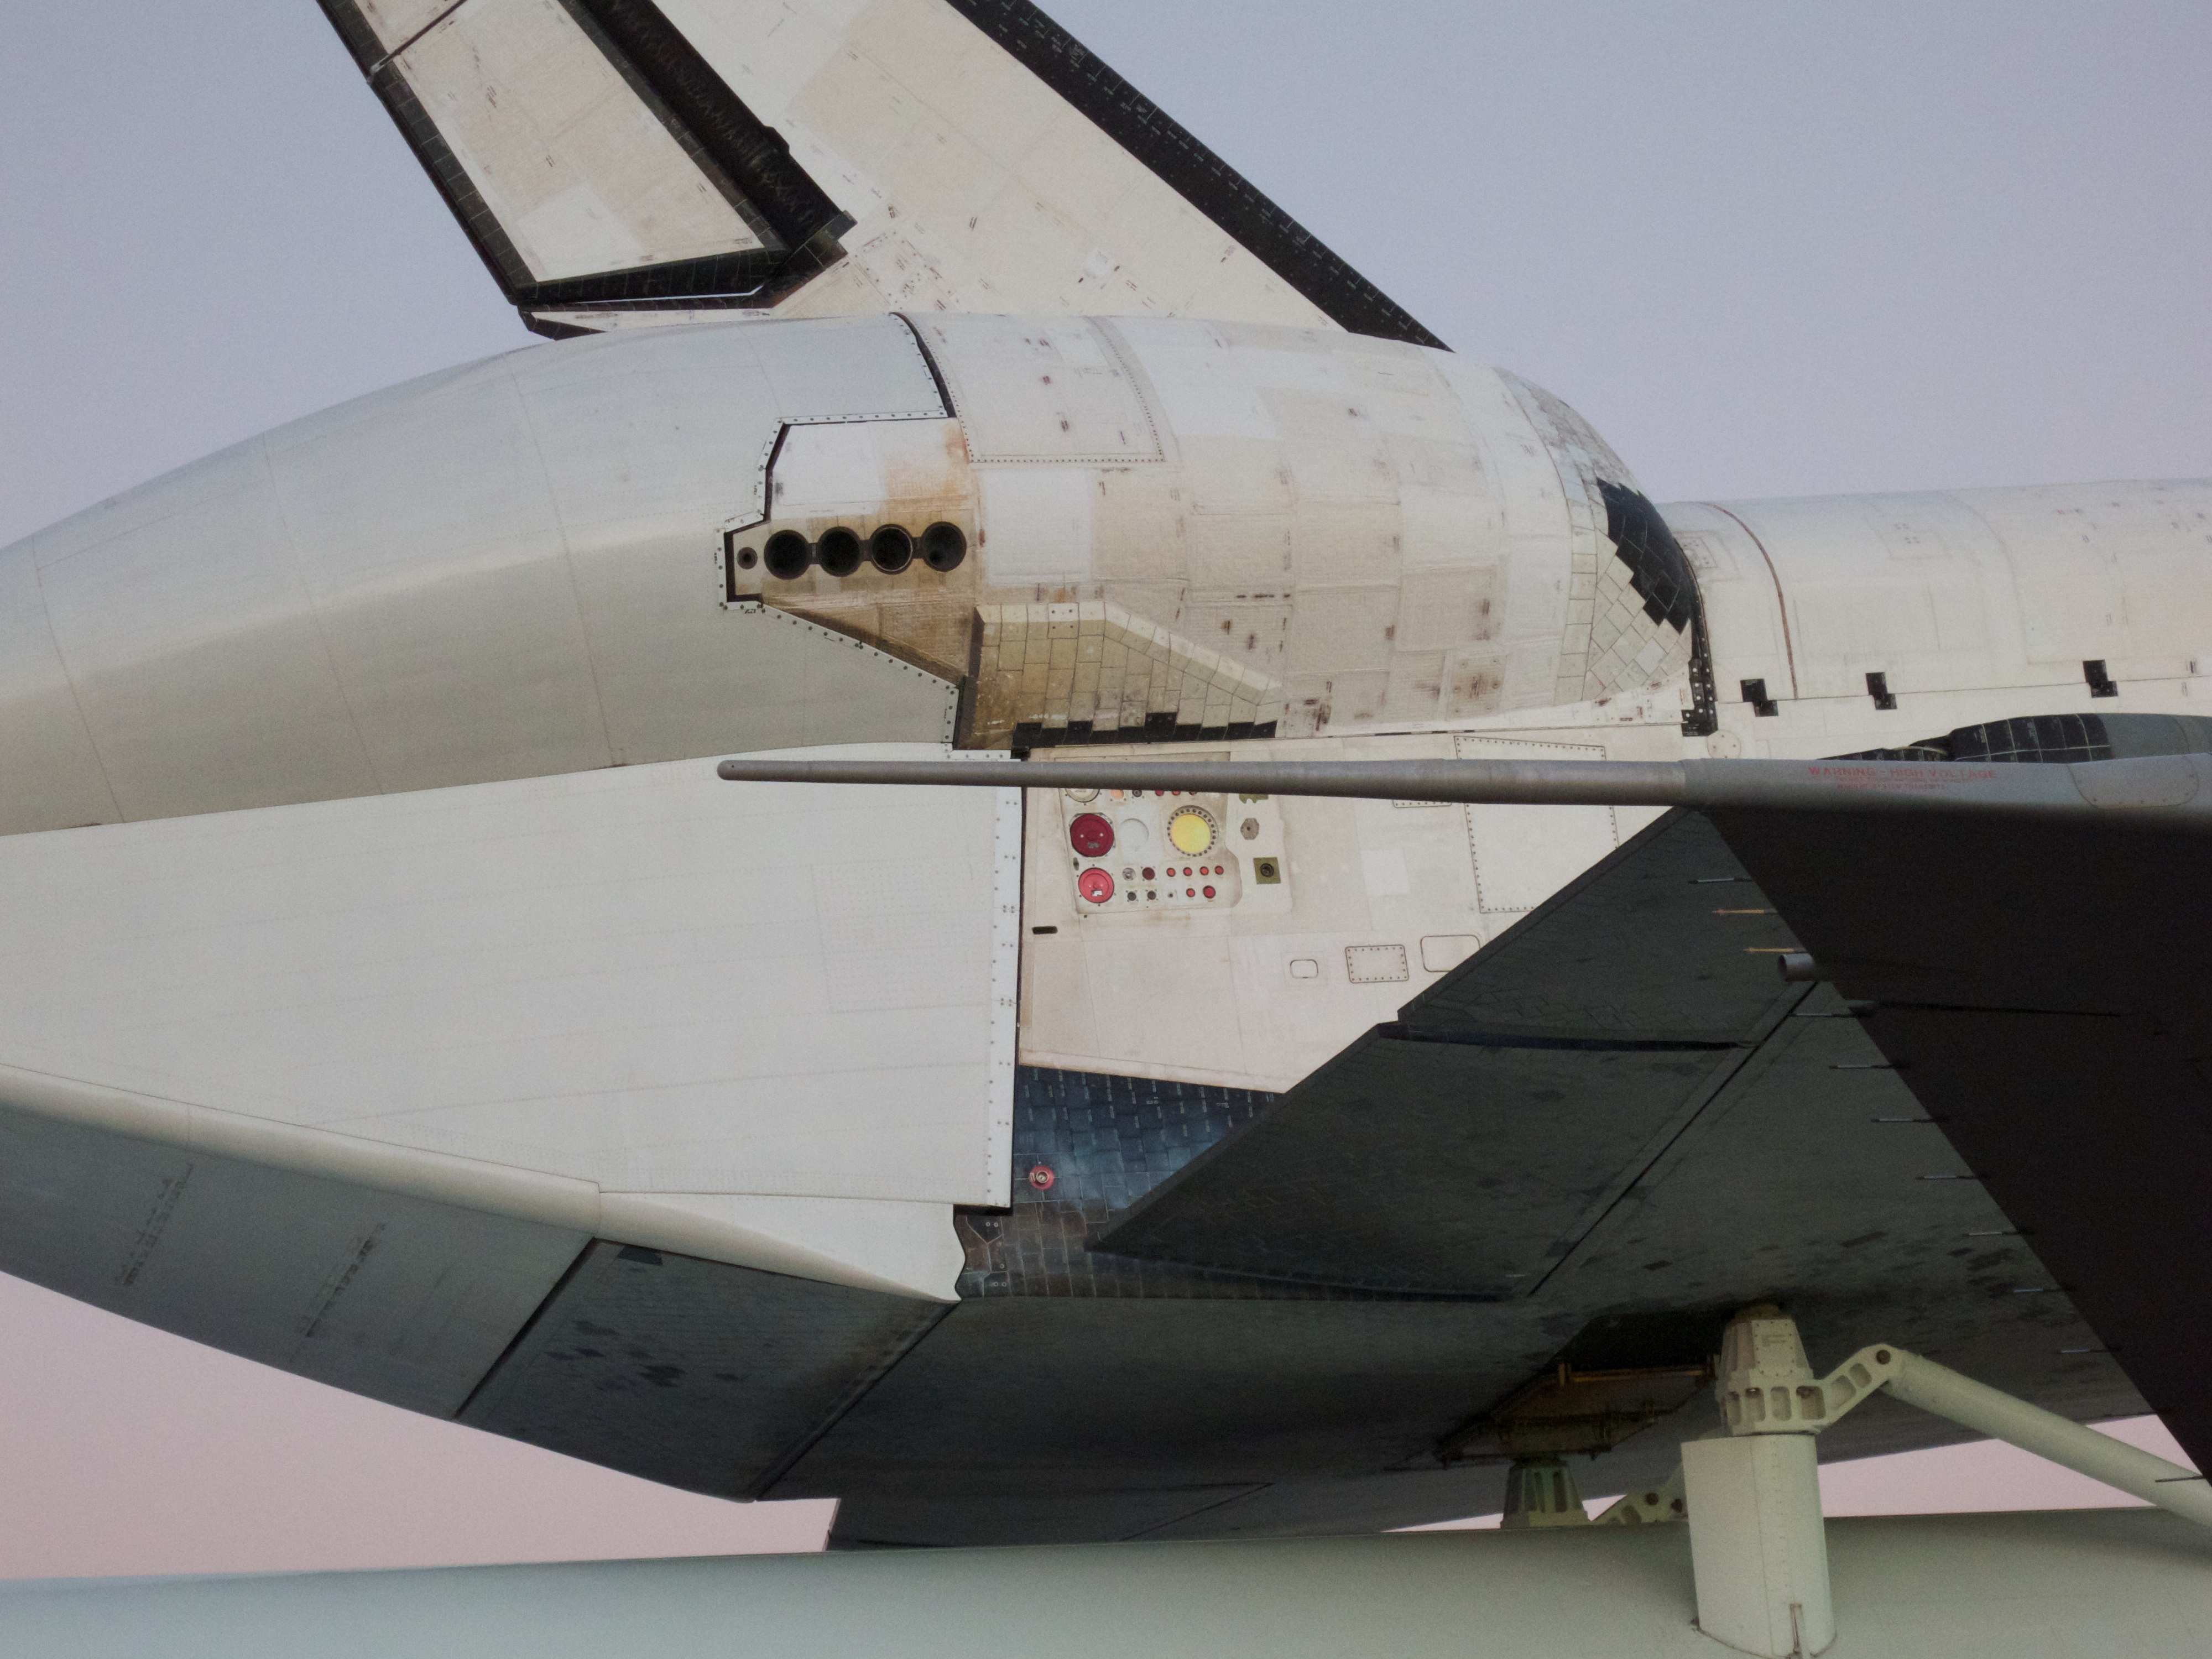 Detail of Endeavour's umbilical ports. These are connected to the Tail Servicing Mast prior to launch and are used to load propellent and provide ground power to the vehicle.